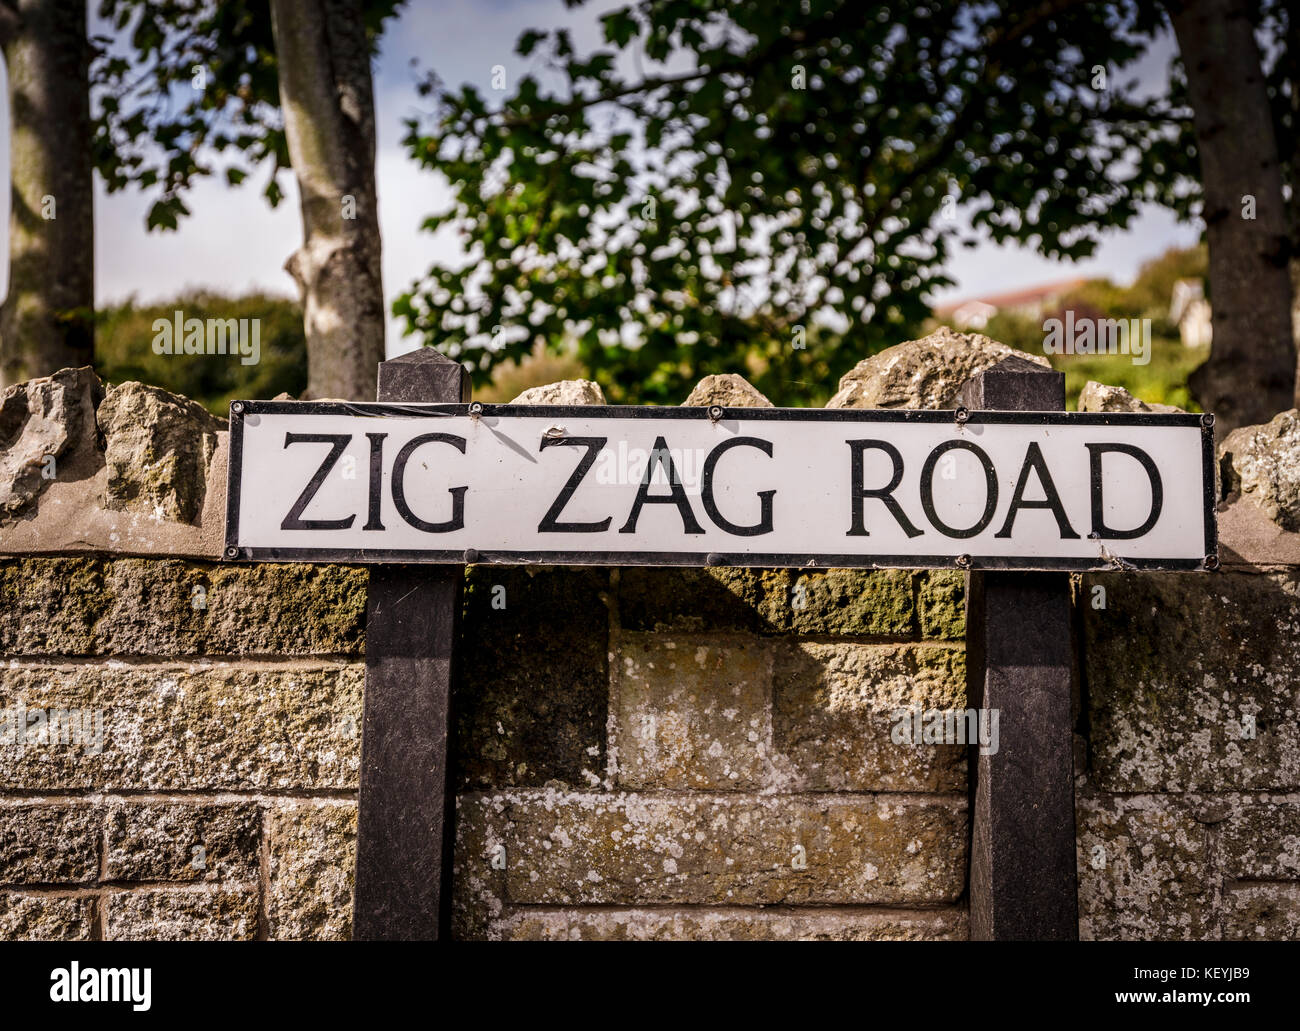 A road sign for Zig Zag Road in Ventnor on the Isle of Wight. - Stock Image